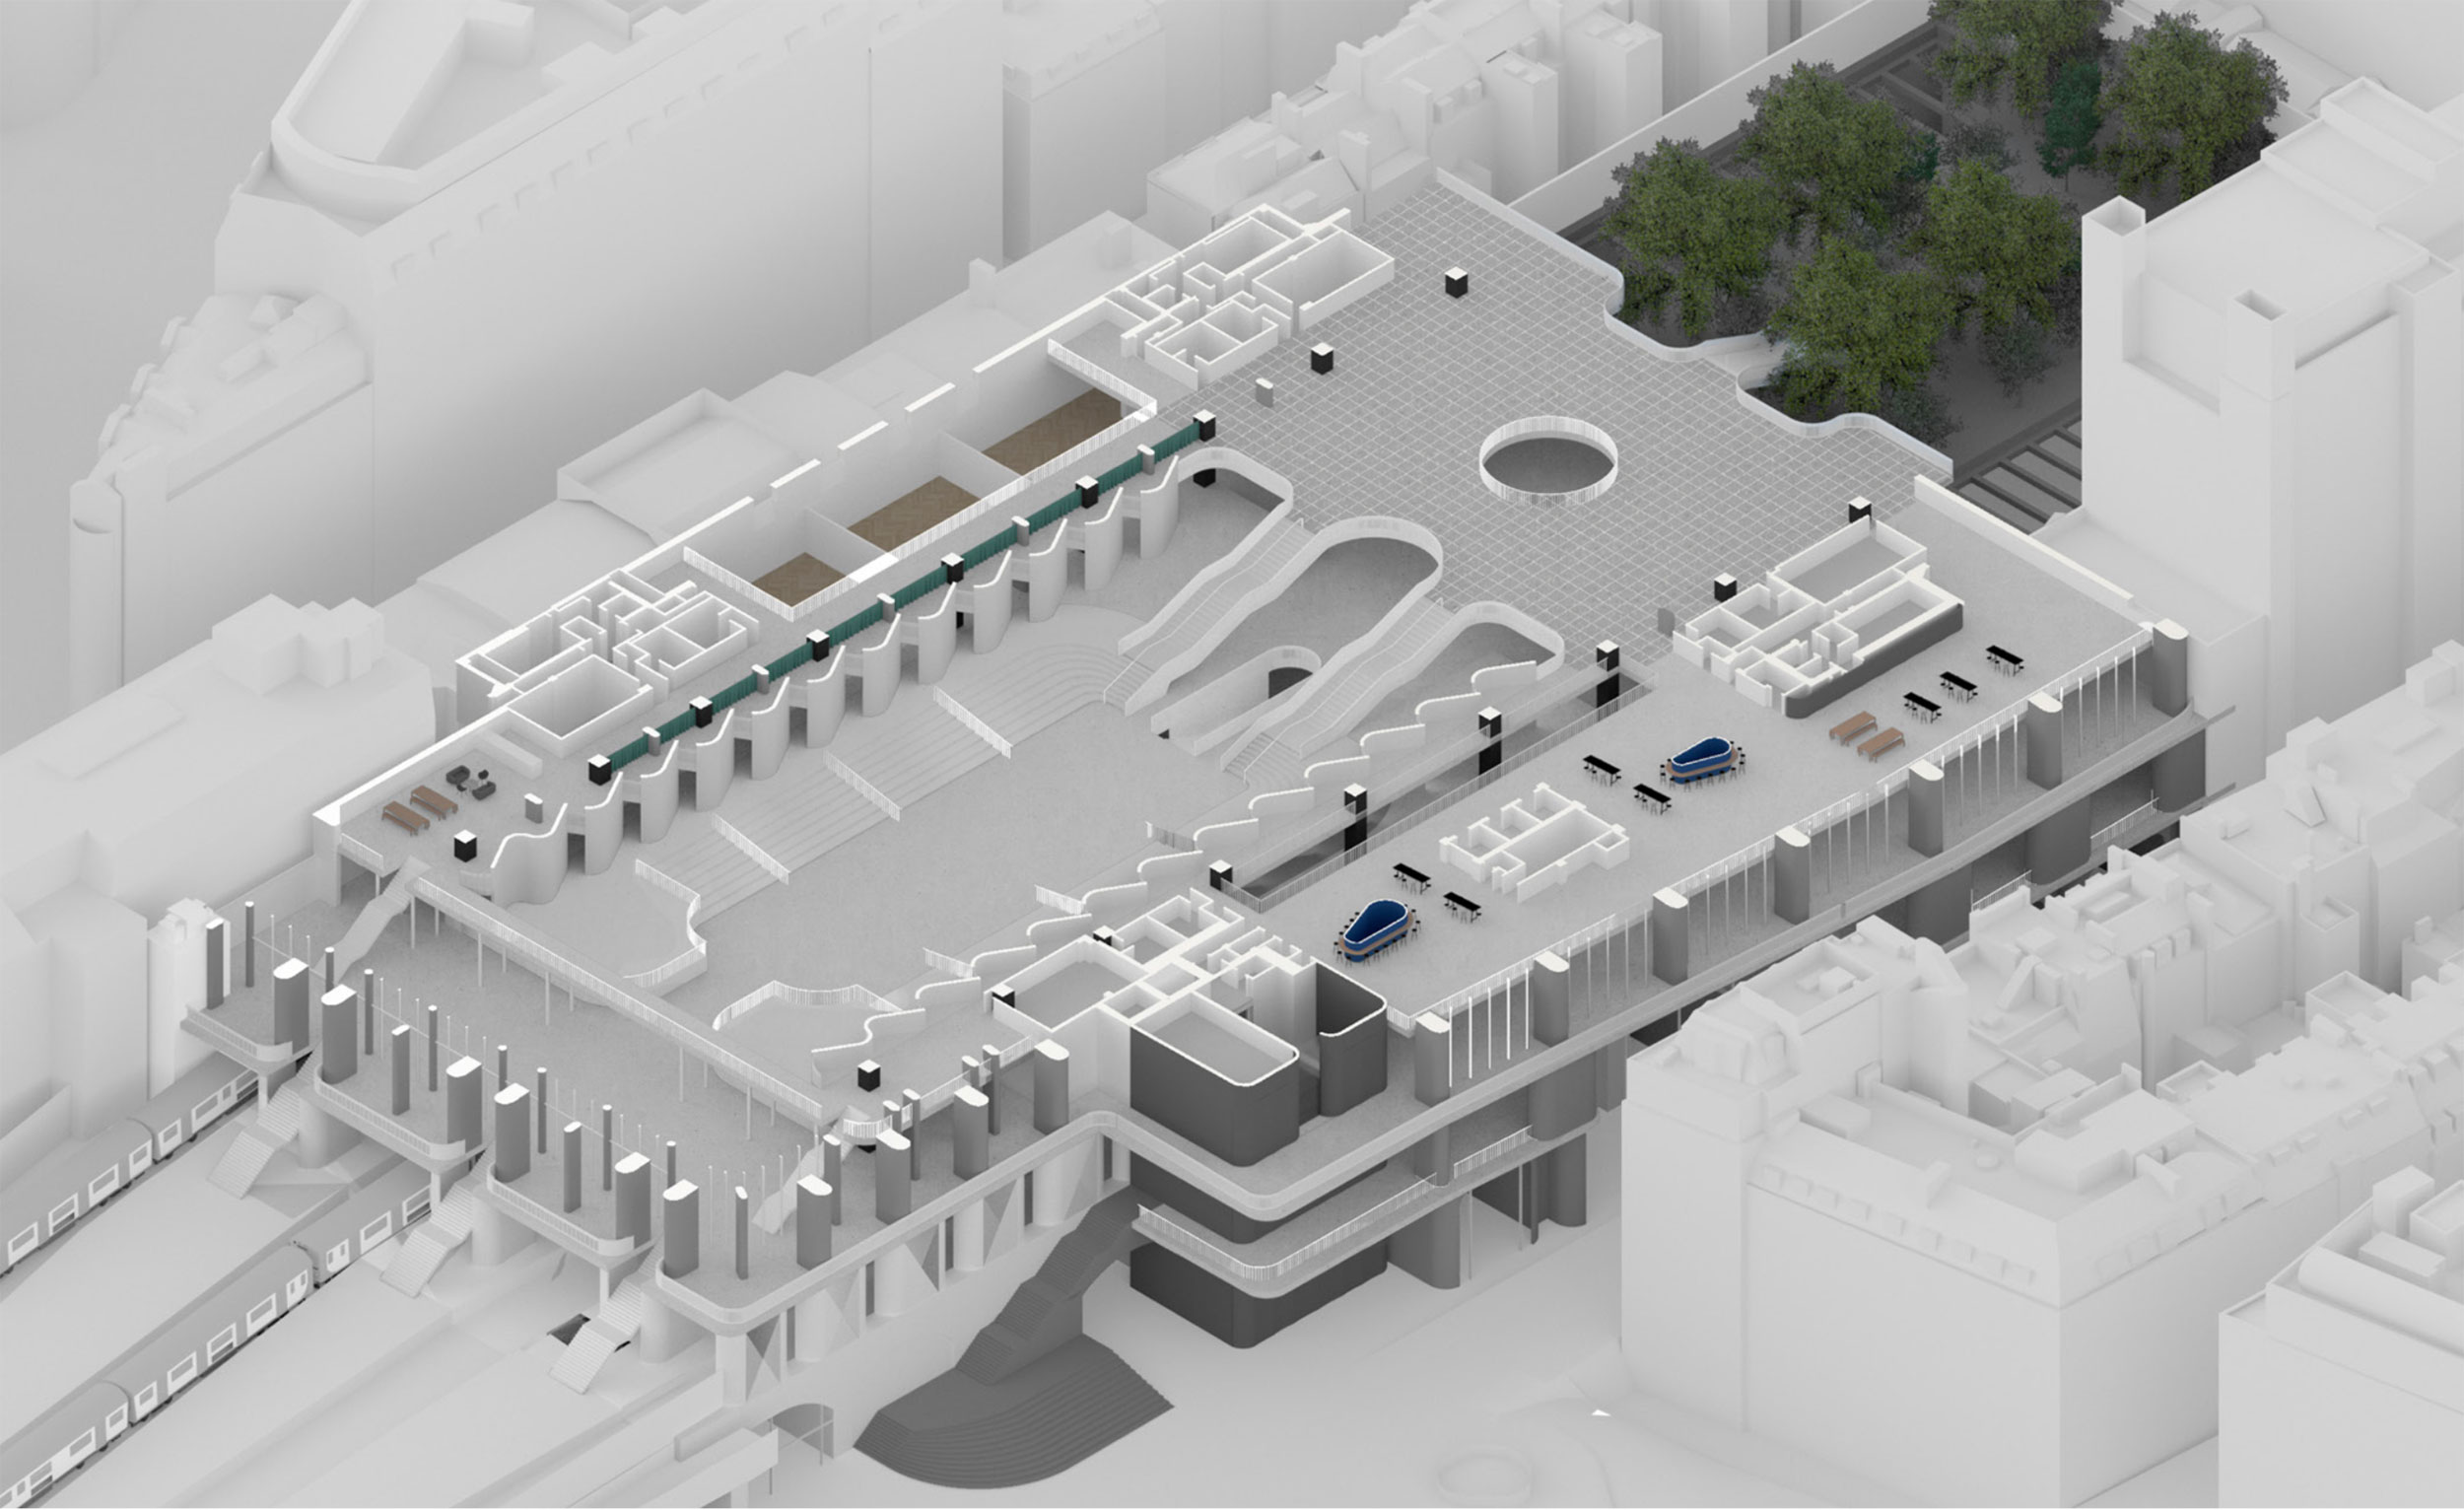 Ground floor axonometric section – the Hungerford Bridge meets an entirely  new ground floor  civic plaza offering  a space for conference, contemplation and movement through  the station.